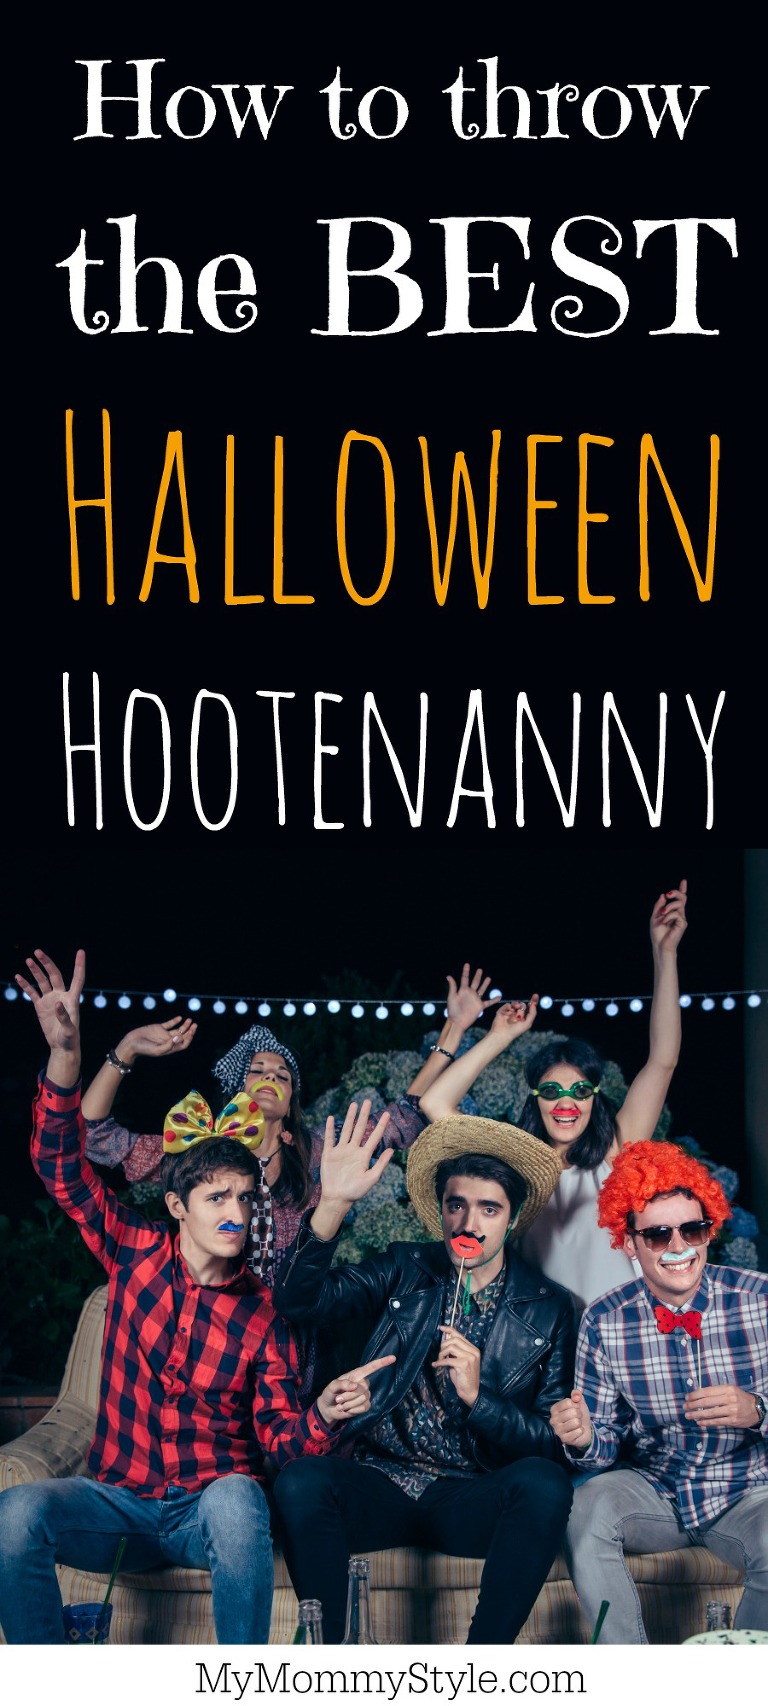 how-to-throw-the-best-halloween-hootenanny